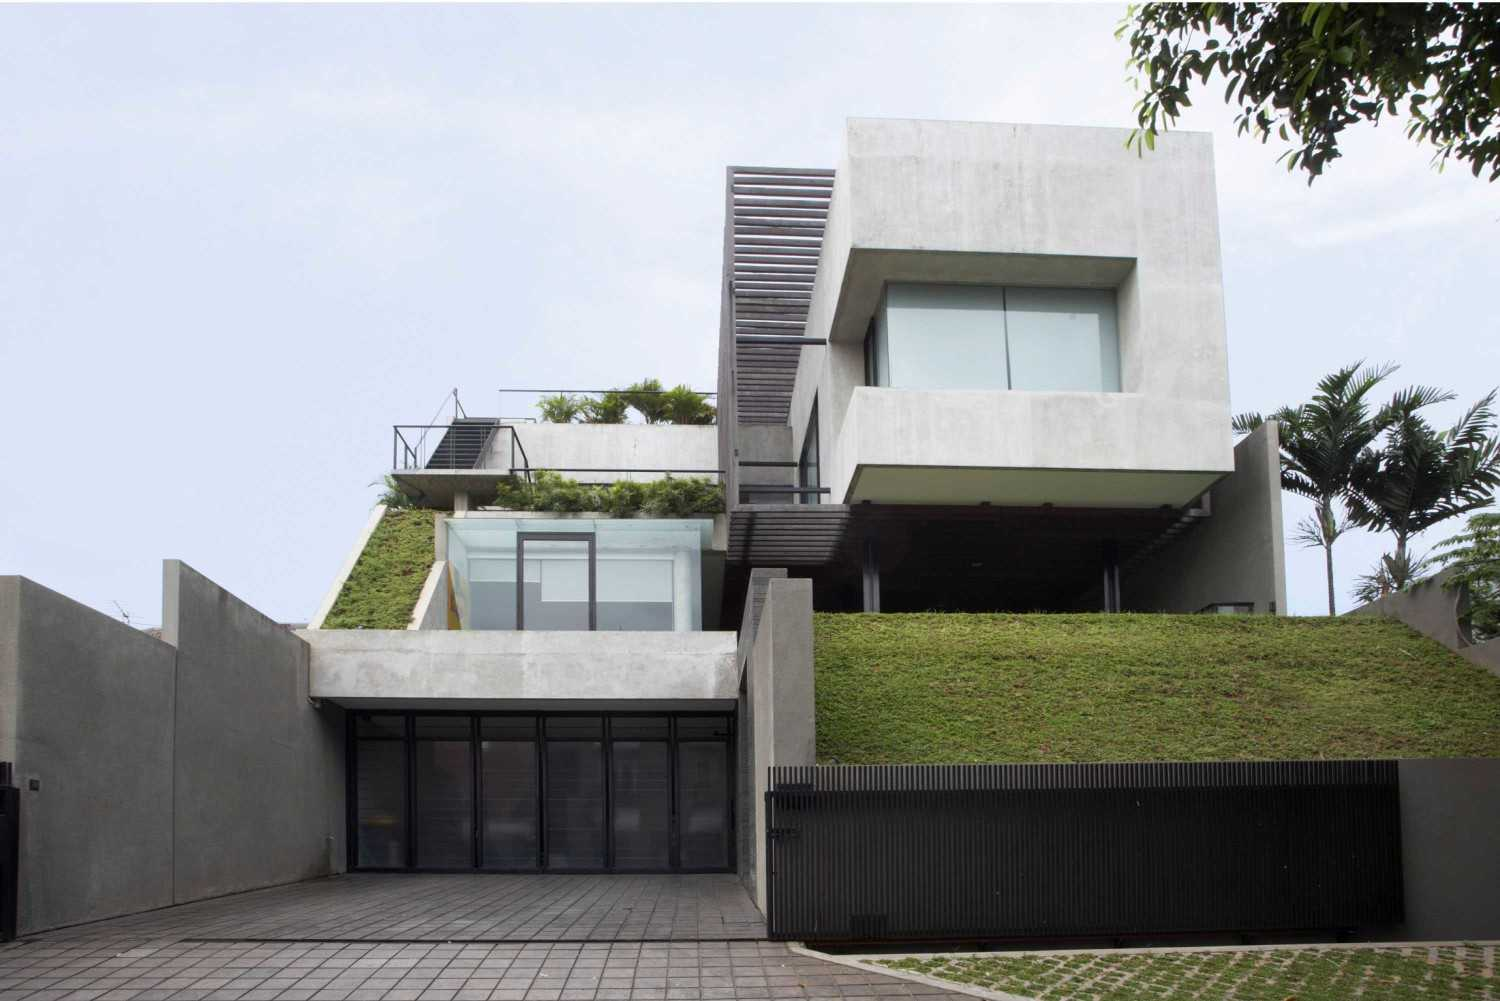 Studio Air Putih W_House Tulodong, Jakarta Tulodong, Jakarta Front View Contemporary 25171